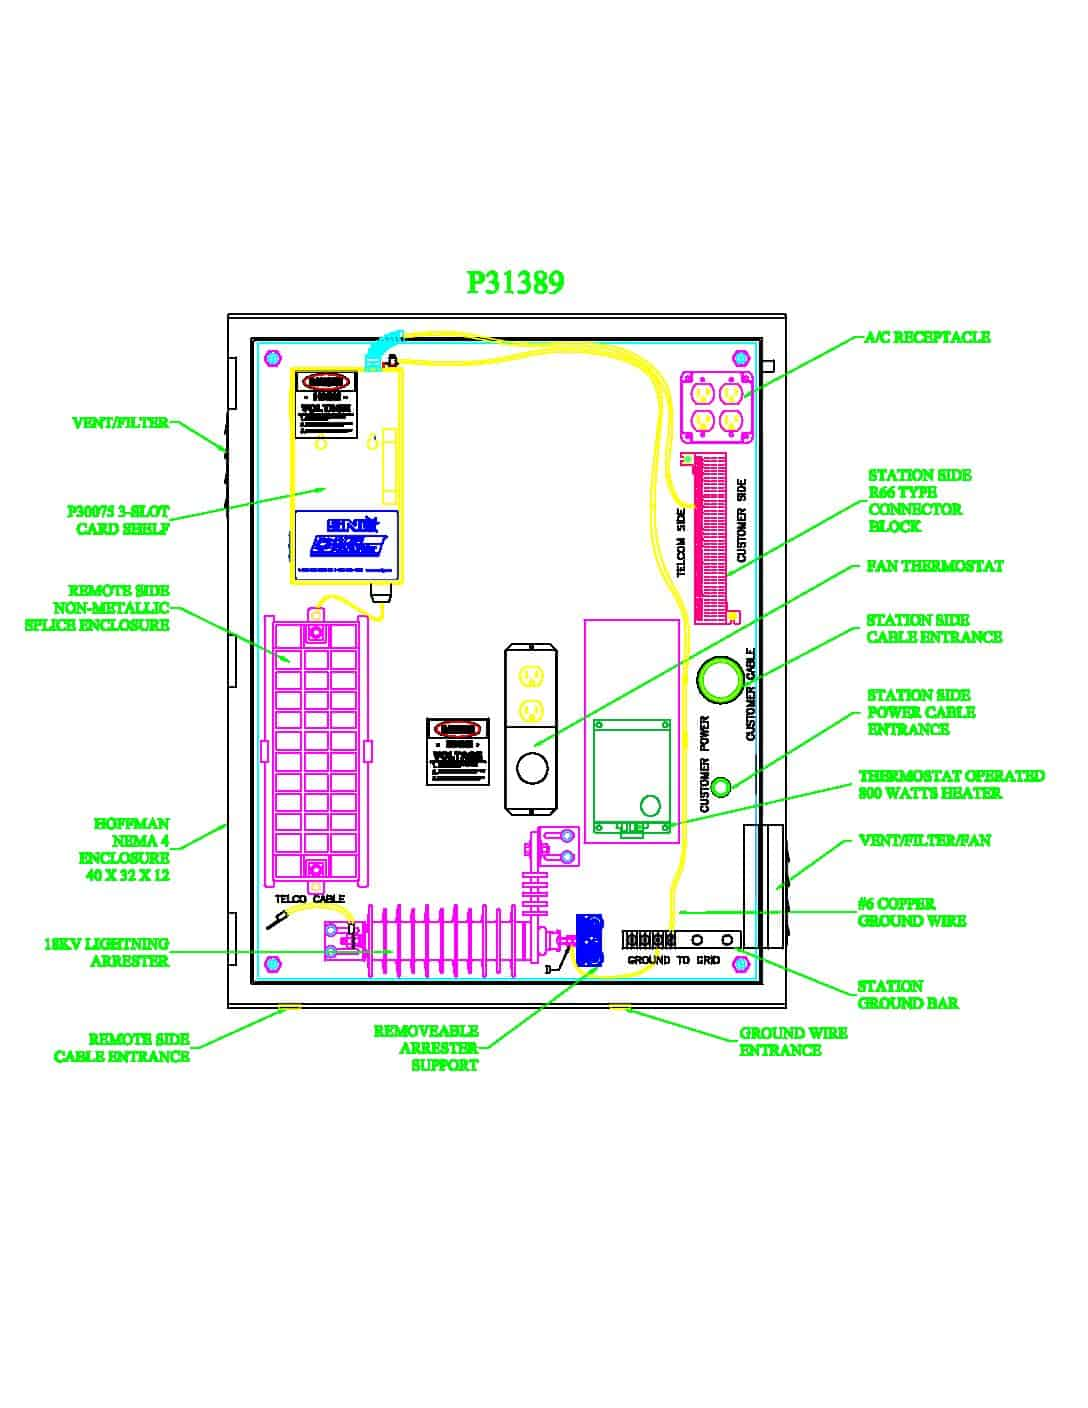 P31389 Turnkey Protection Packages - 3 slot PDF thumbnail